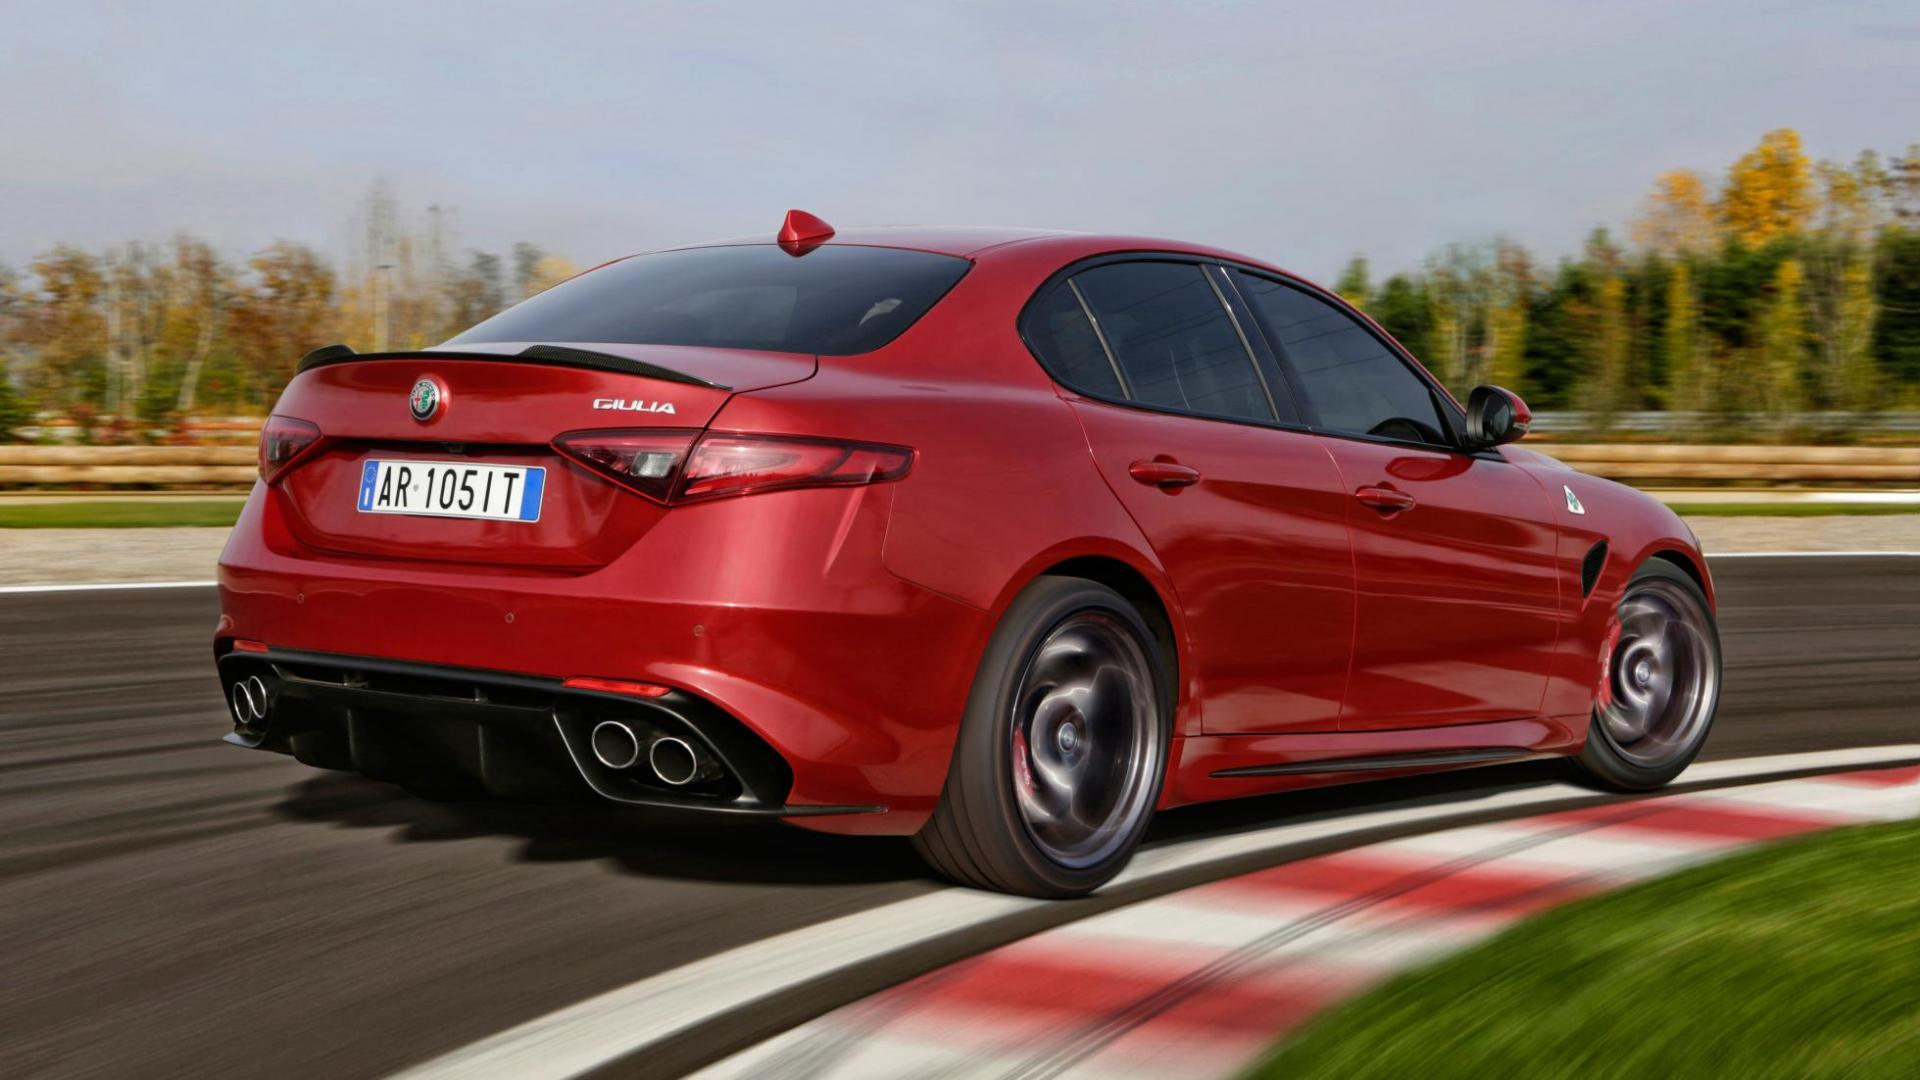 alfa romeo giulia qv 1e rij indruk topgear. Black Bedroom Furniture Sets. Home Design Ideas